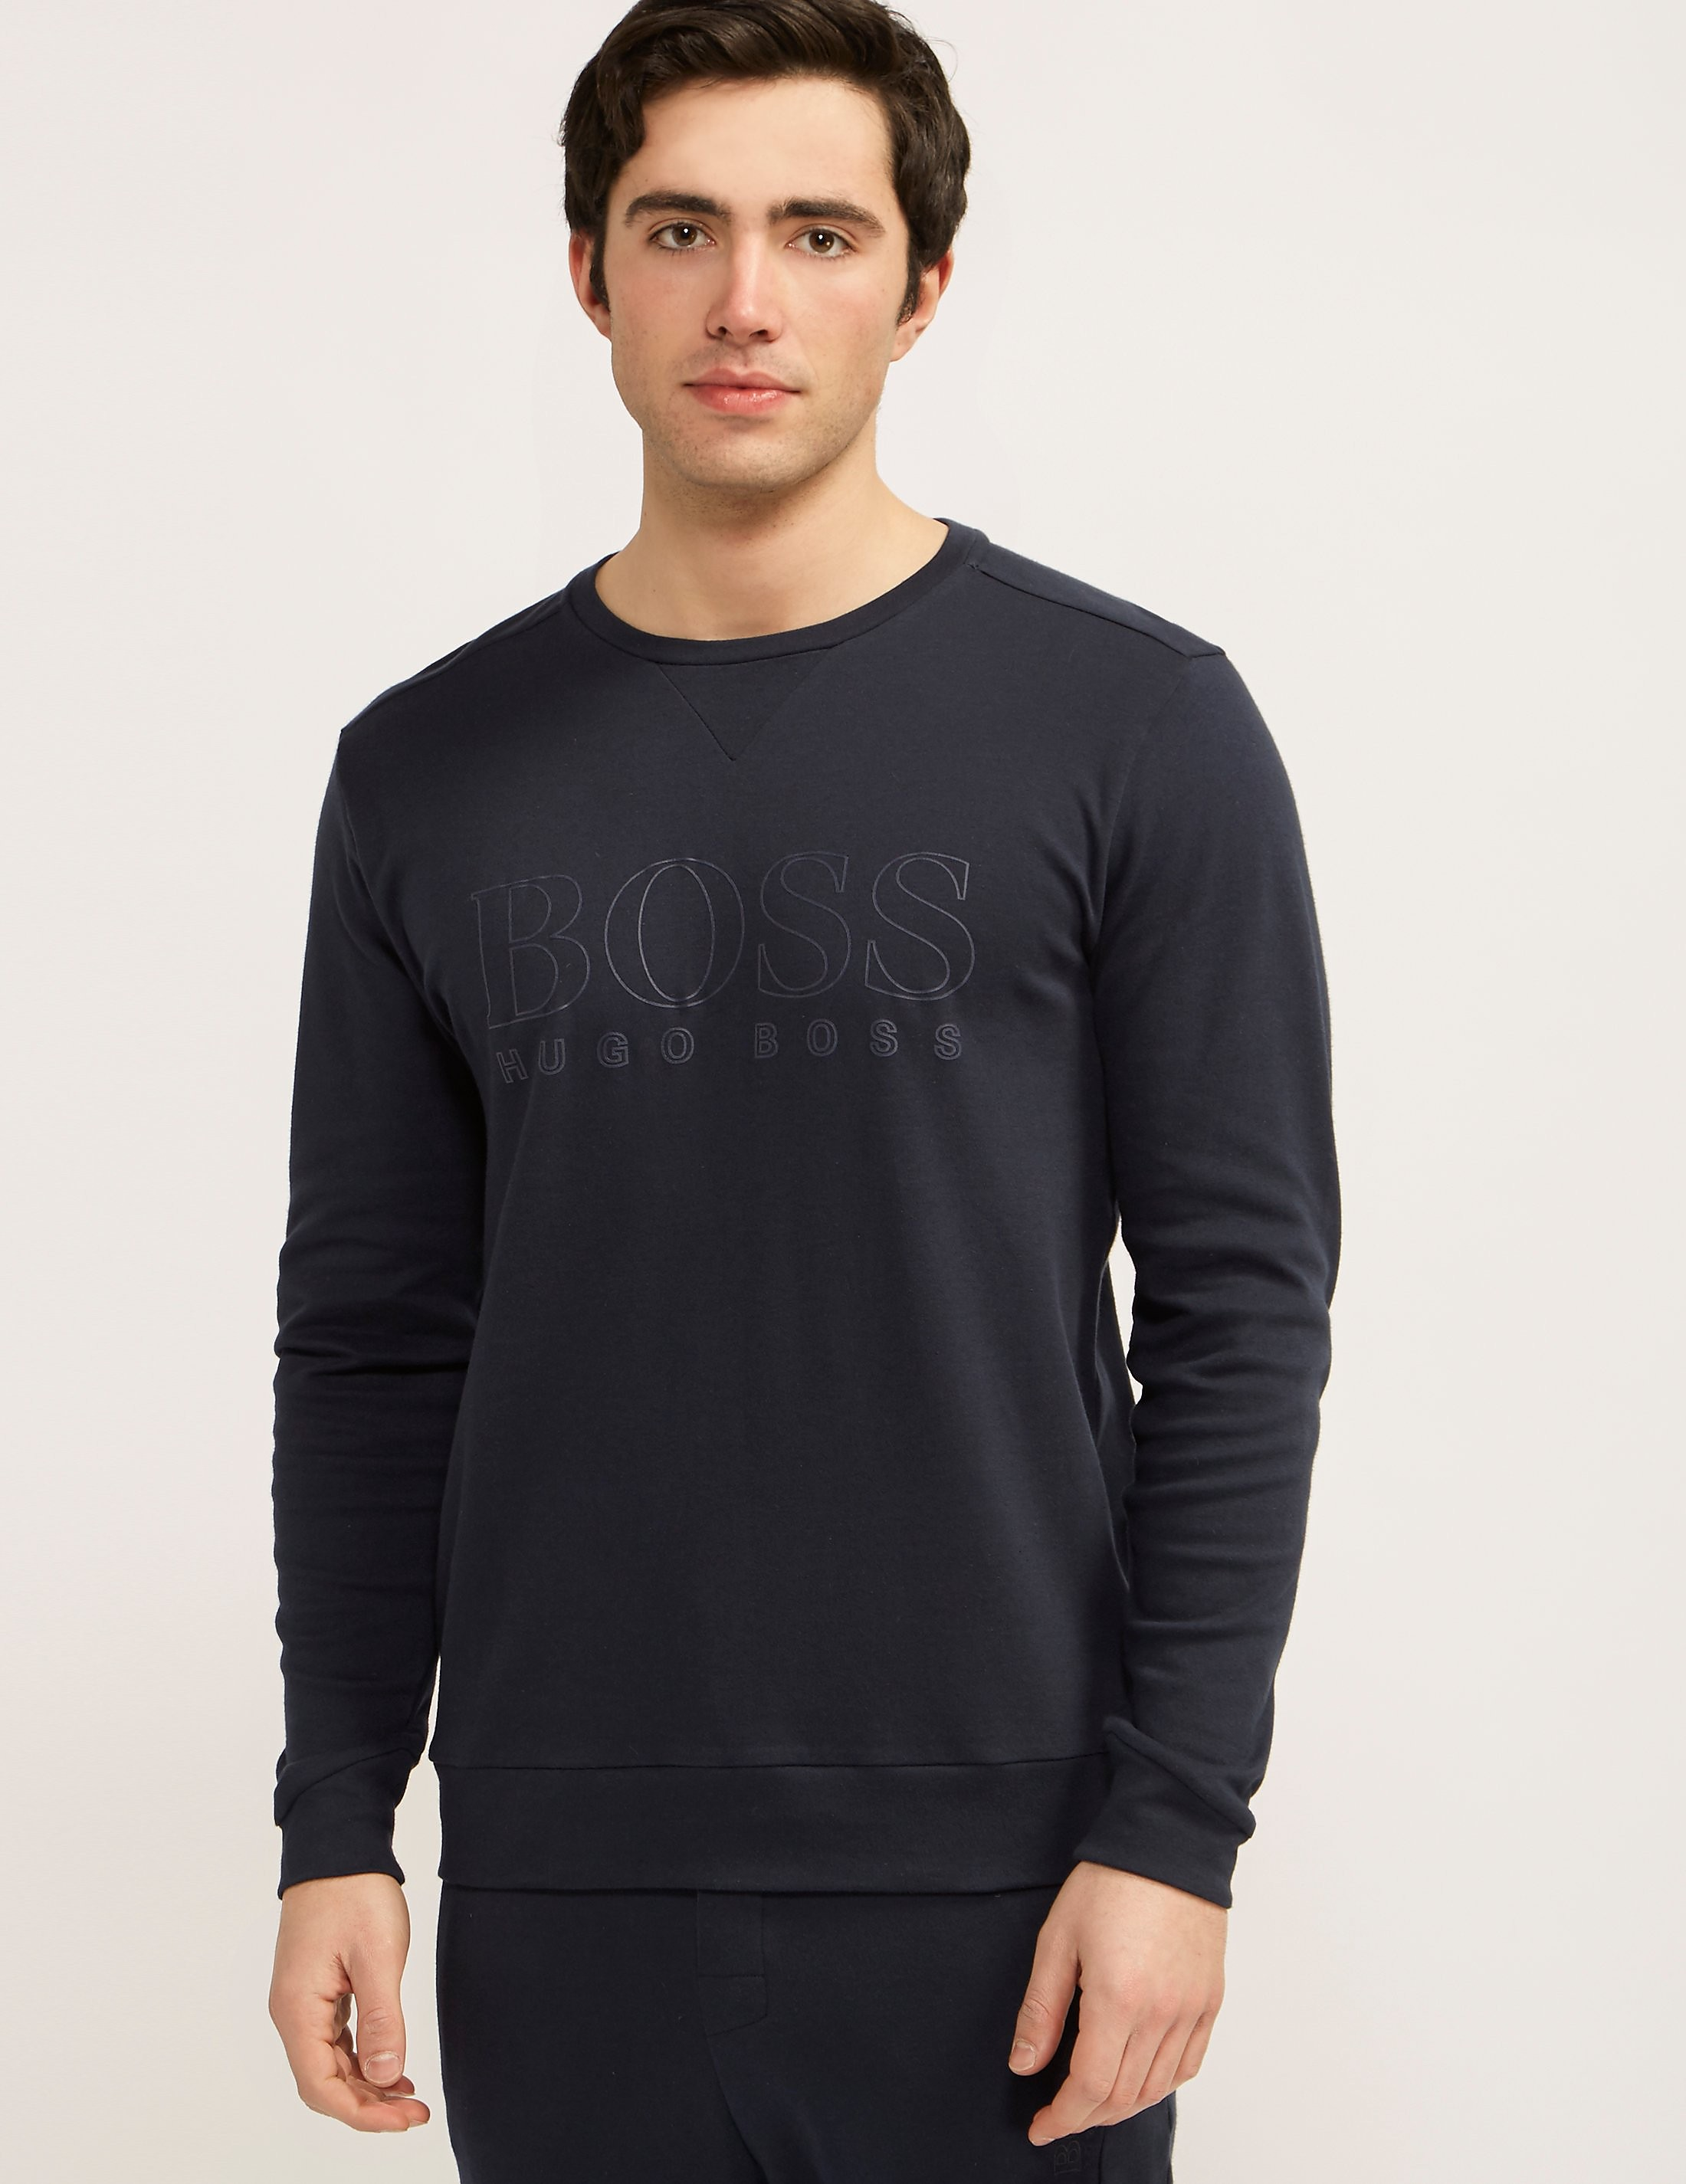 BOSS Crew Neck Logo Sweatshirt